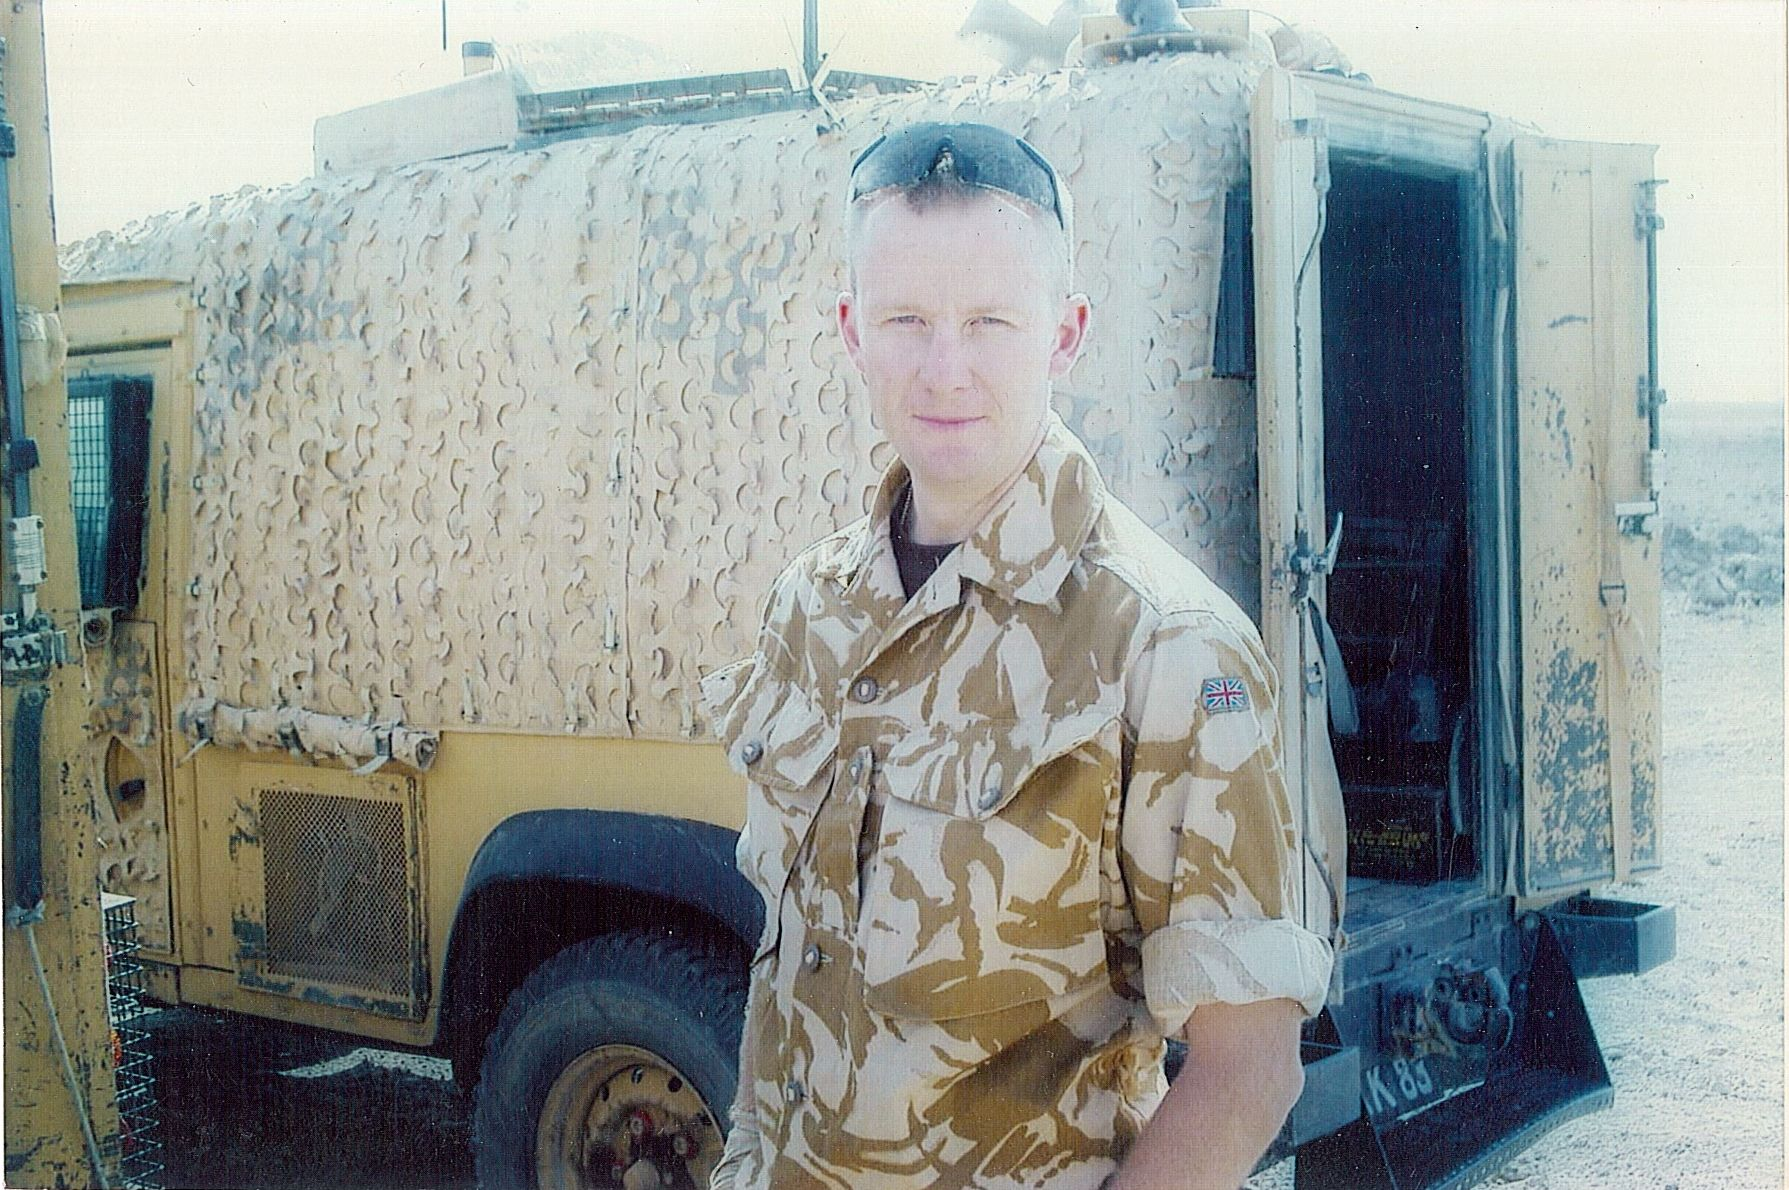 Nick Donovan in Iraq 2005/6